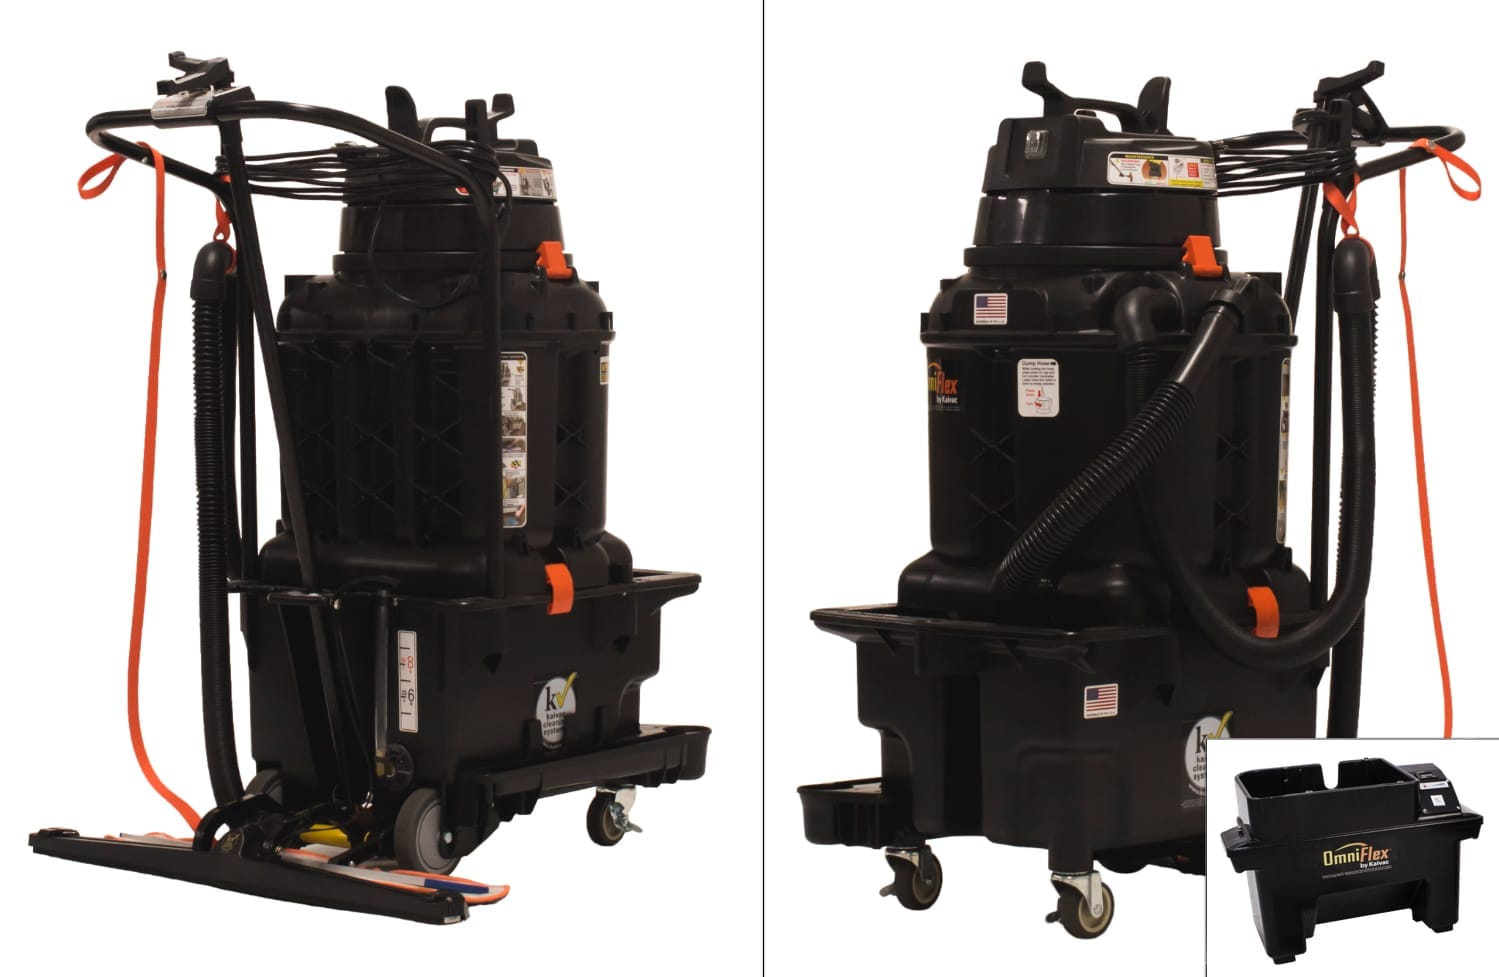 Omniflex Autovac Kaivac Cleaning Systems